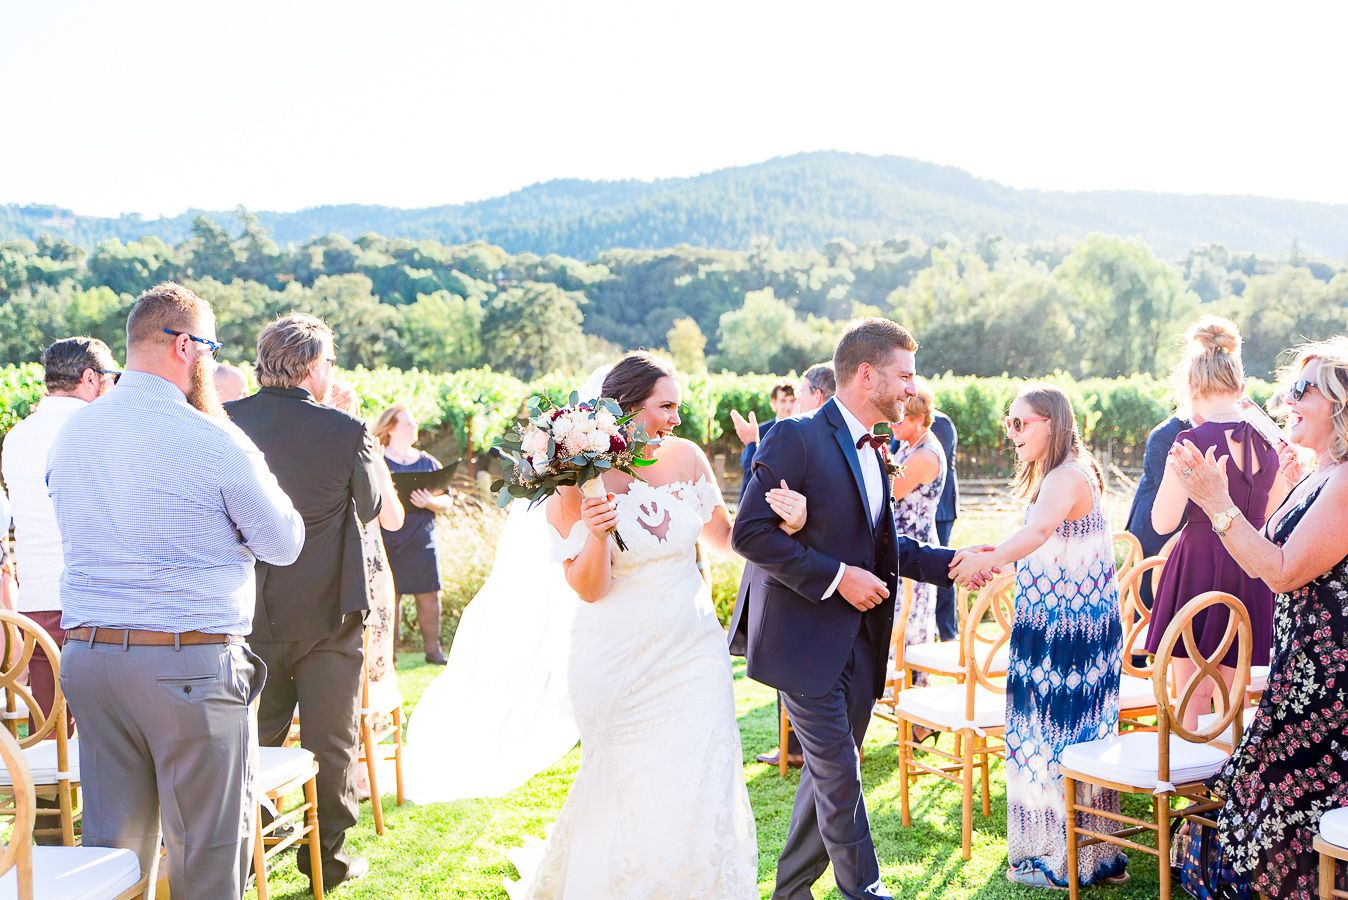 bride and groom walk through guests after getting married on Pennyroyal Farm in Anderson valley